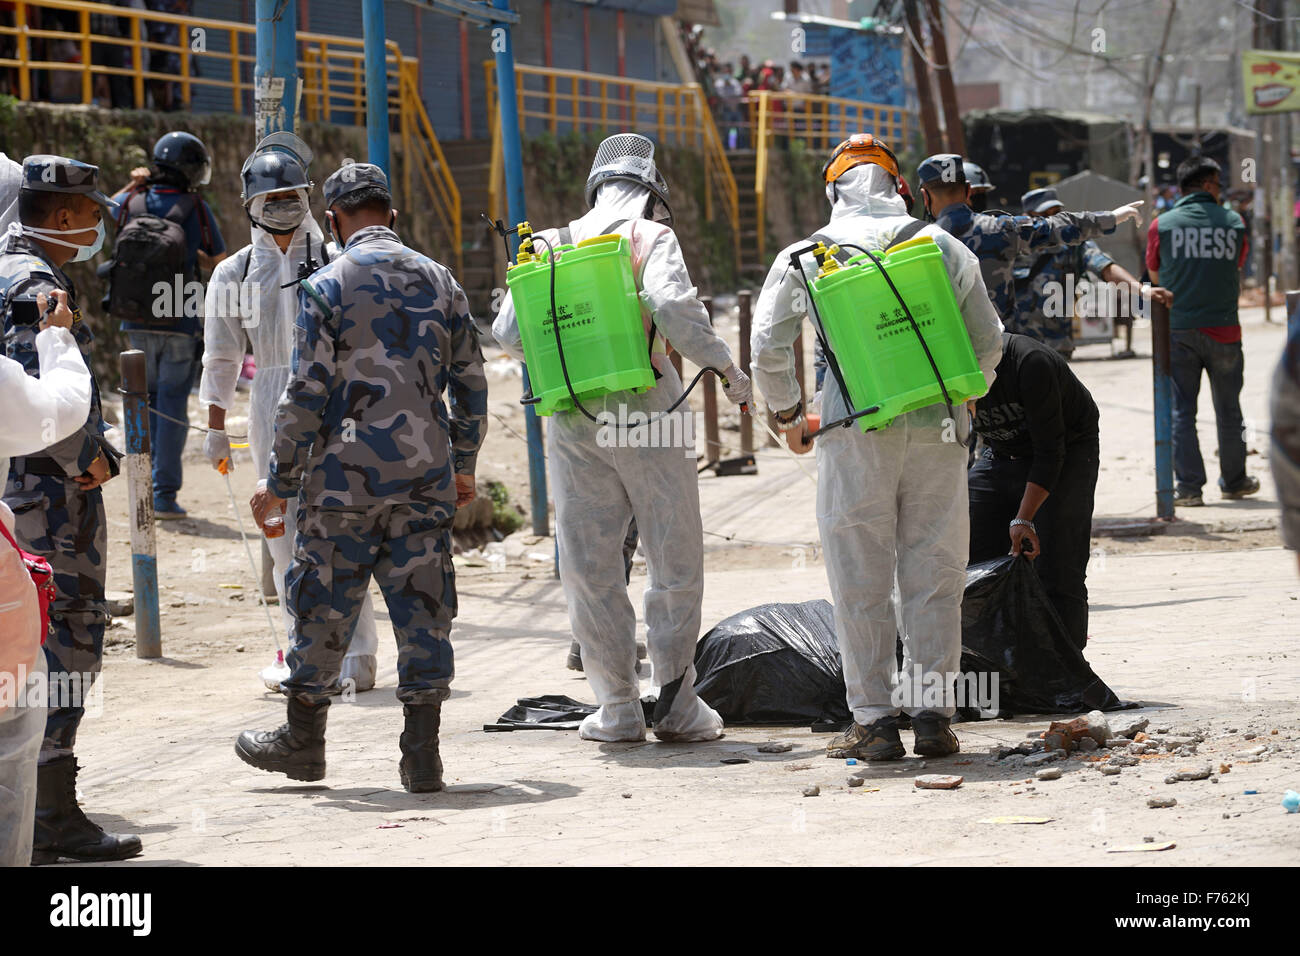 Rescue personnel spray disinfectant on dead body, gongabu, nepal, asia - Stock Image